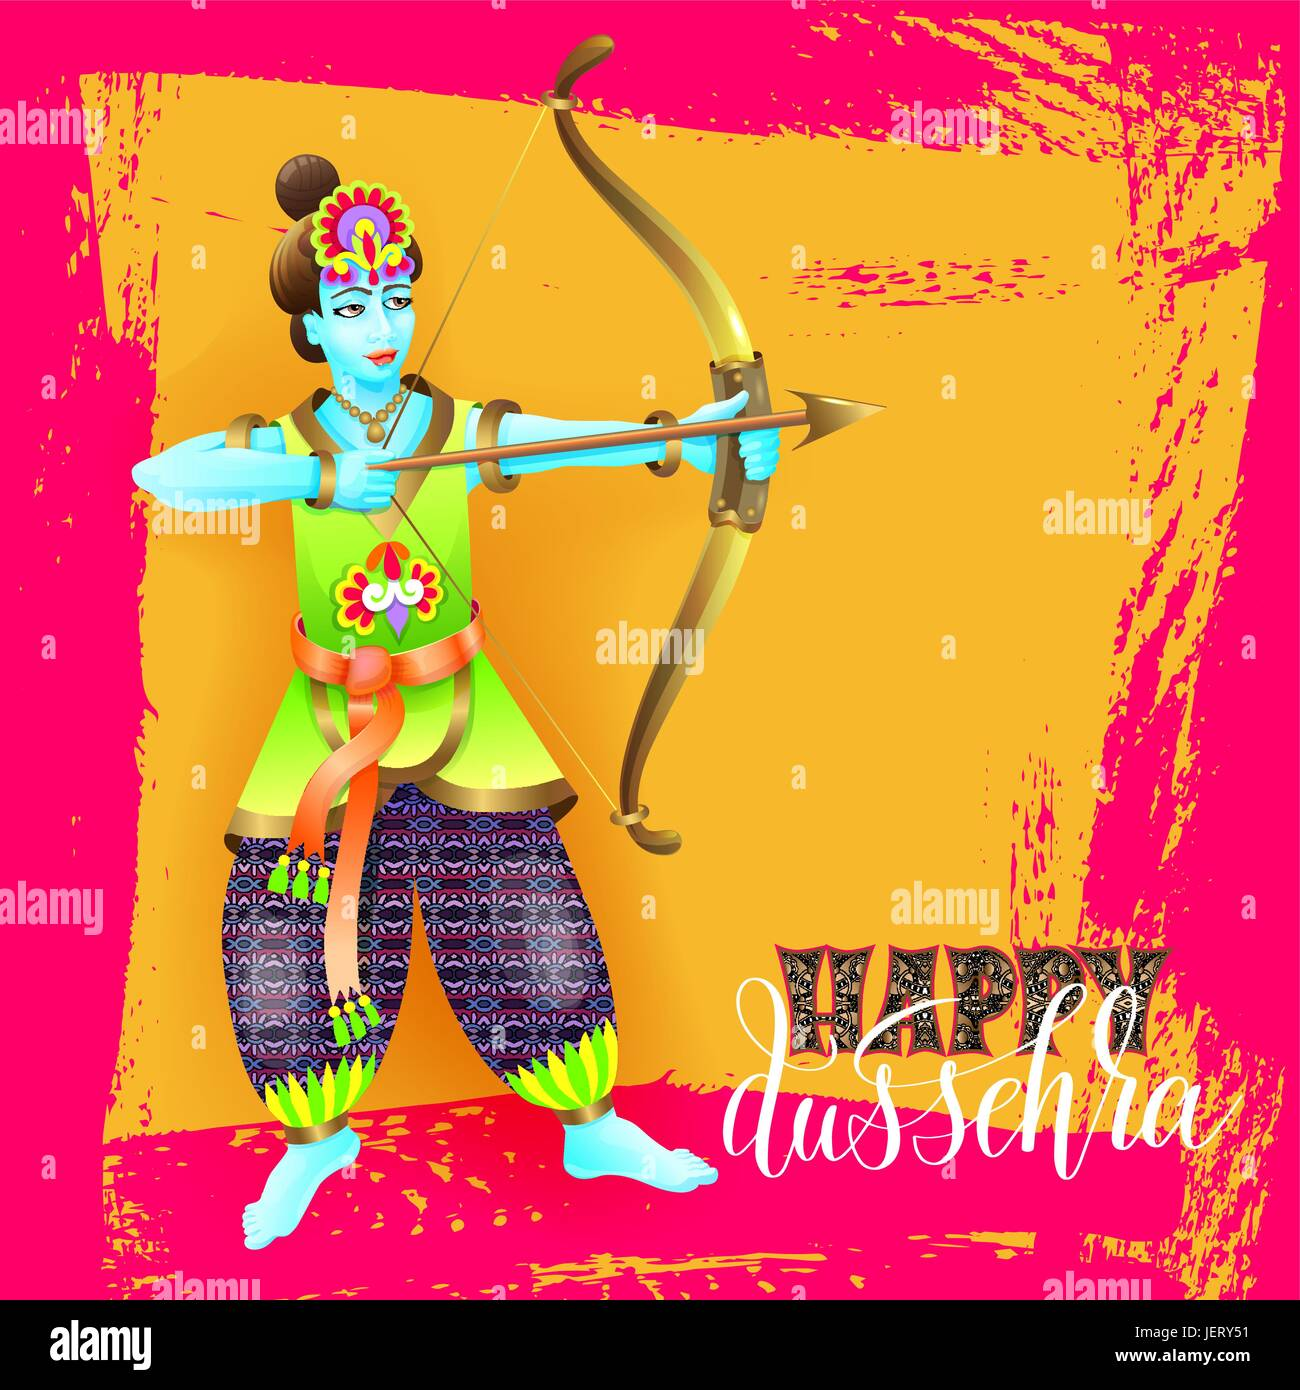 Happy dussehra greeting card design with the god krishna stock happy dussehra greeting card design with the god krishna m4hsunfo